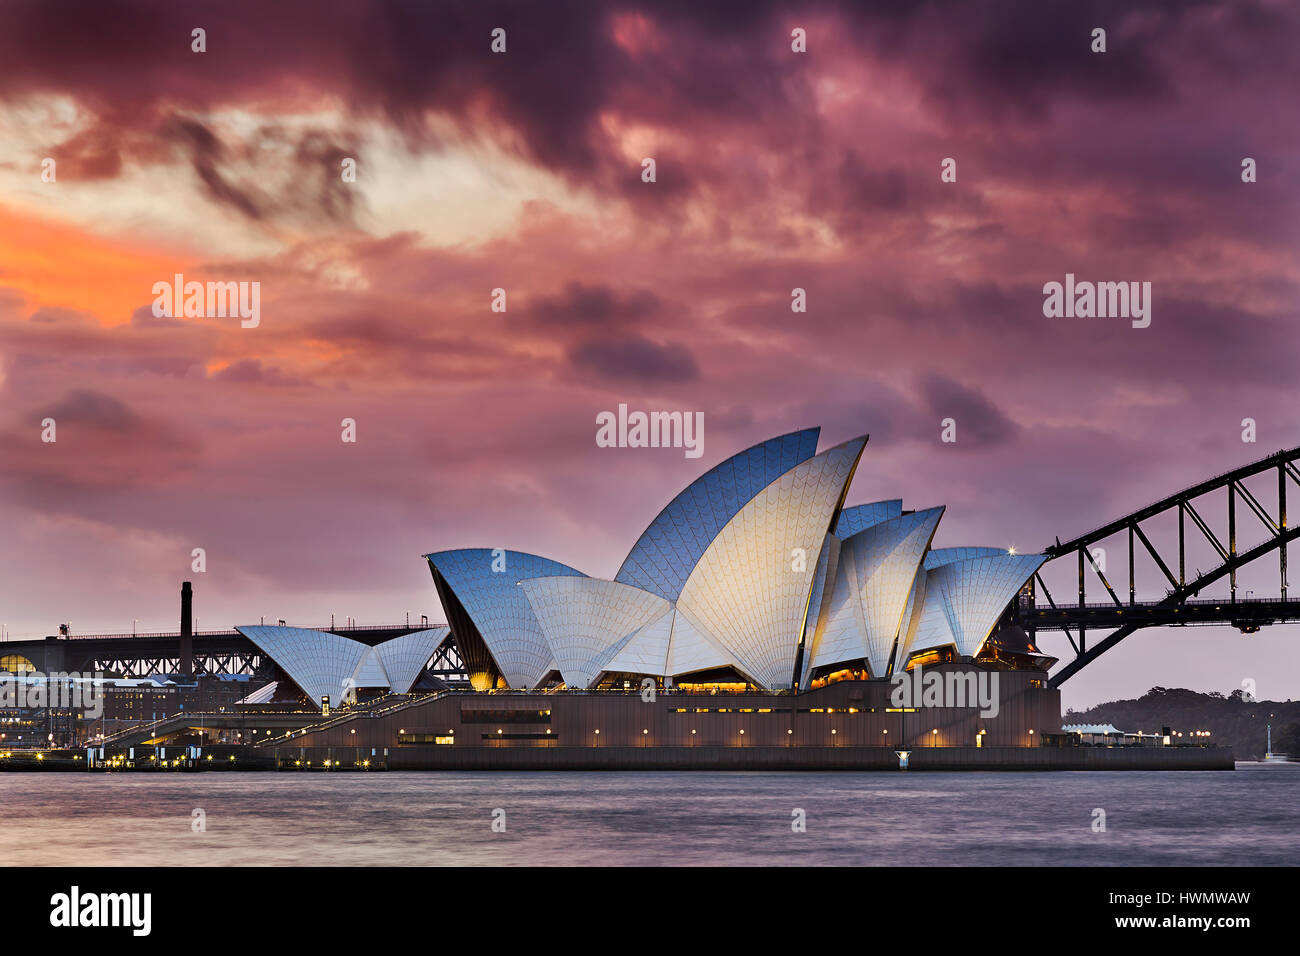 Sydney, Australia - 19 March 2017: Colourful sunset through thick clouds over world famous landmark - Sydney Opera - Stock Image